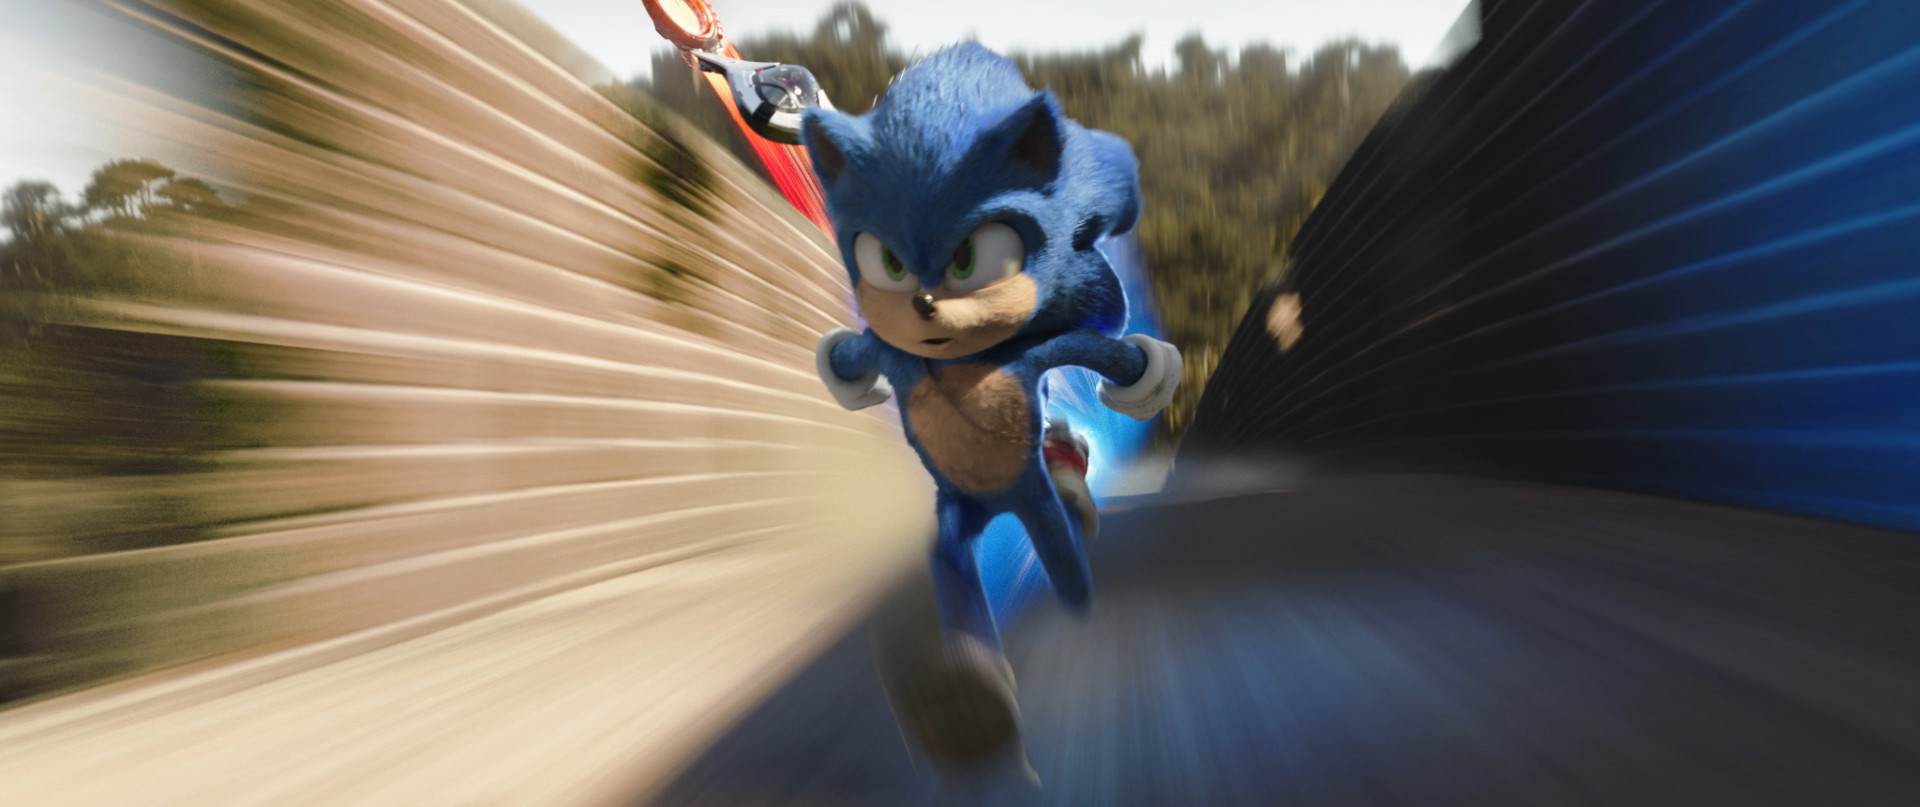 Ben Schwartz tells the Daily News why starring role in new 'Sonic the Hedgehog' movie was a lifetime in the making